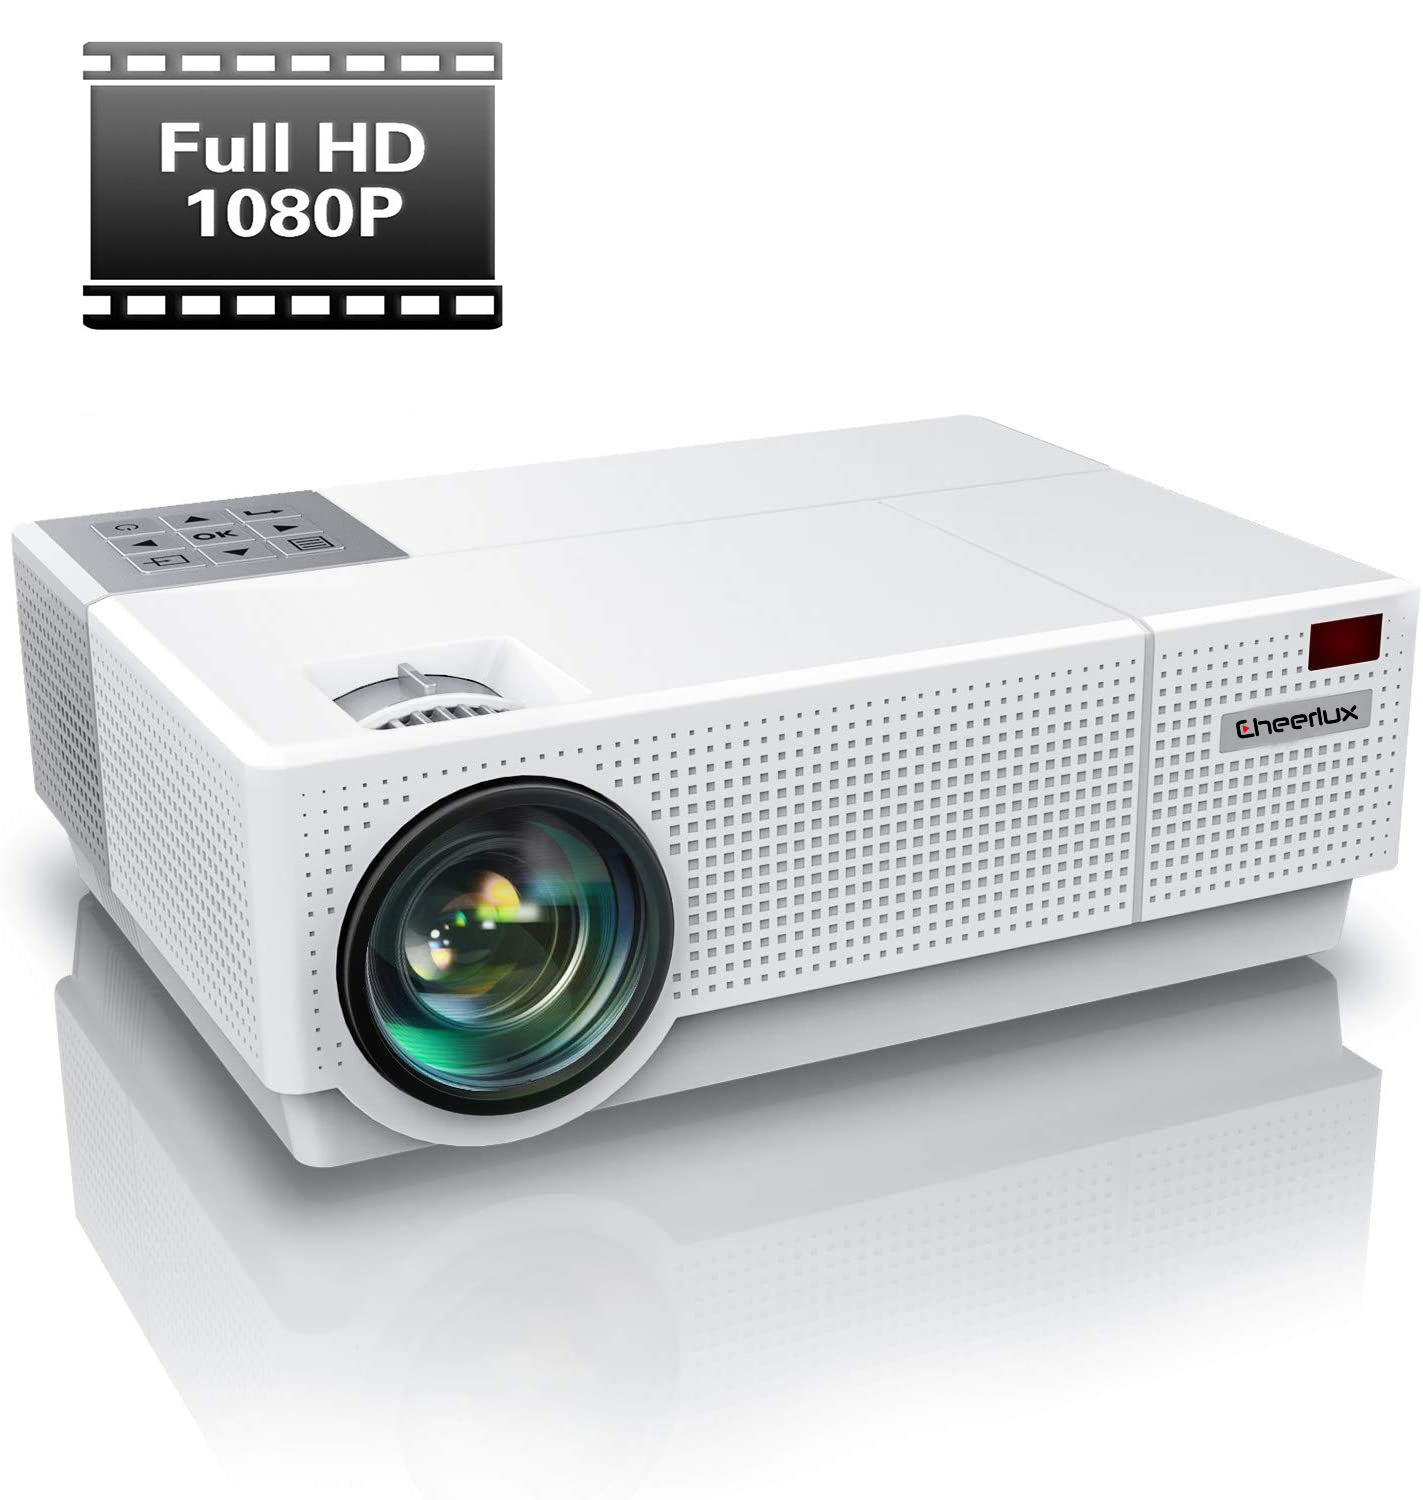 2020 New Upgrade Native 1920x1080p Led 3D multimedia Projector Beamer Full HD Portable Cinema Office Educate Proyector